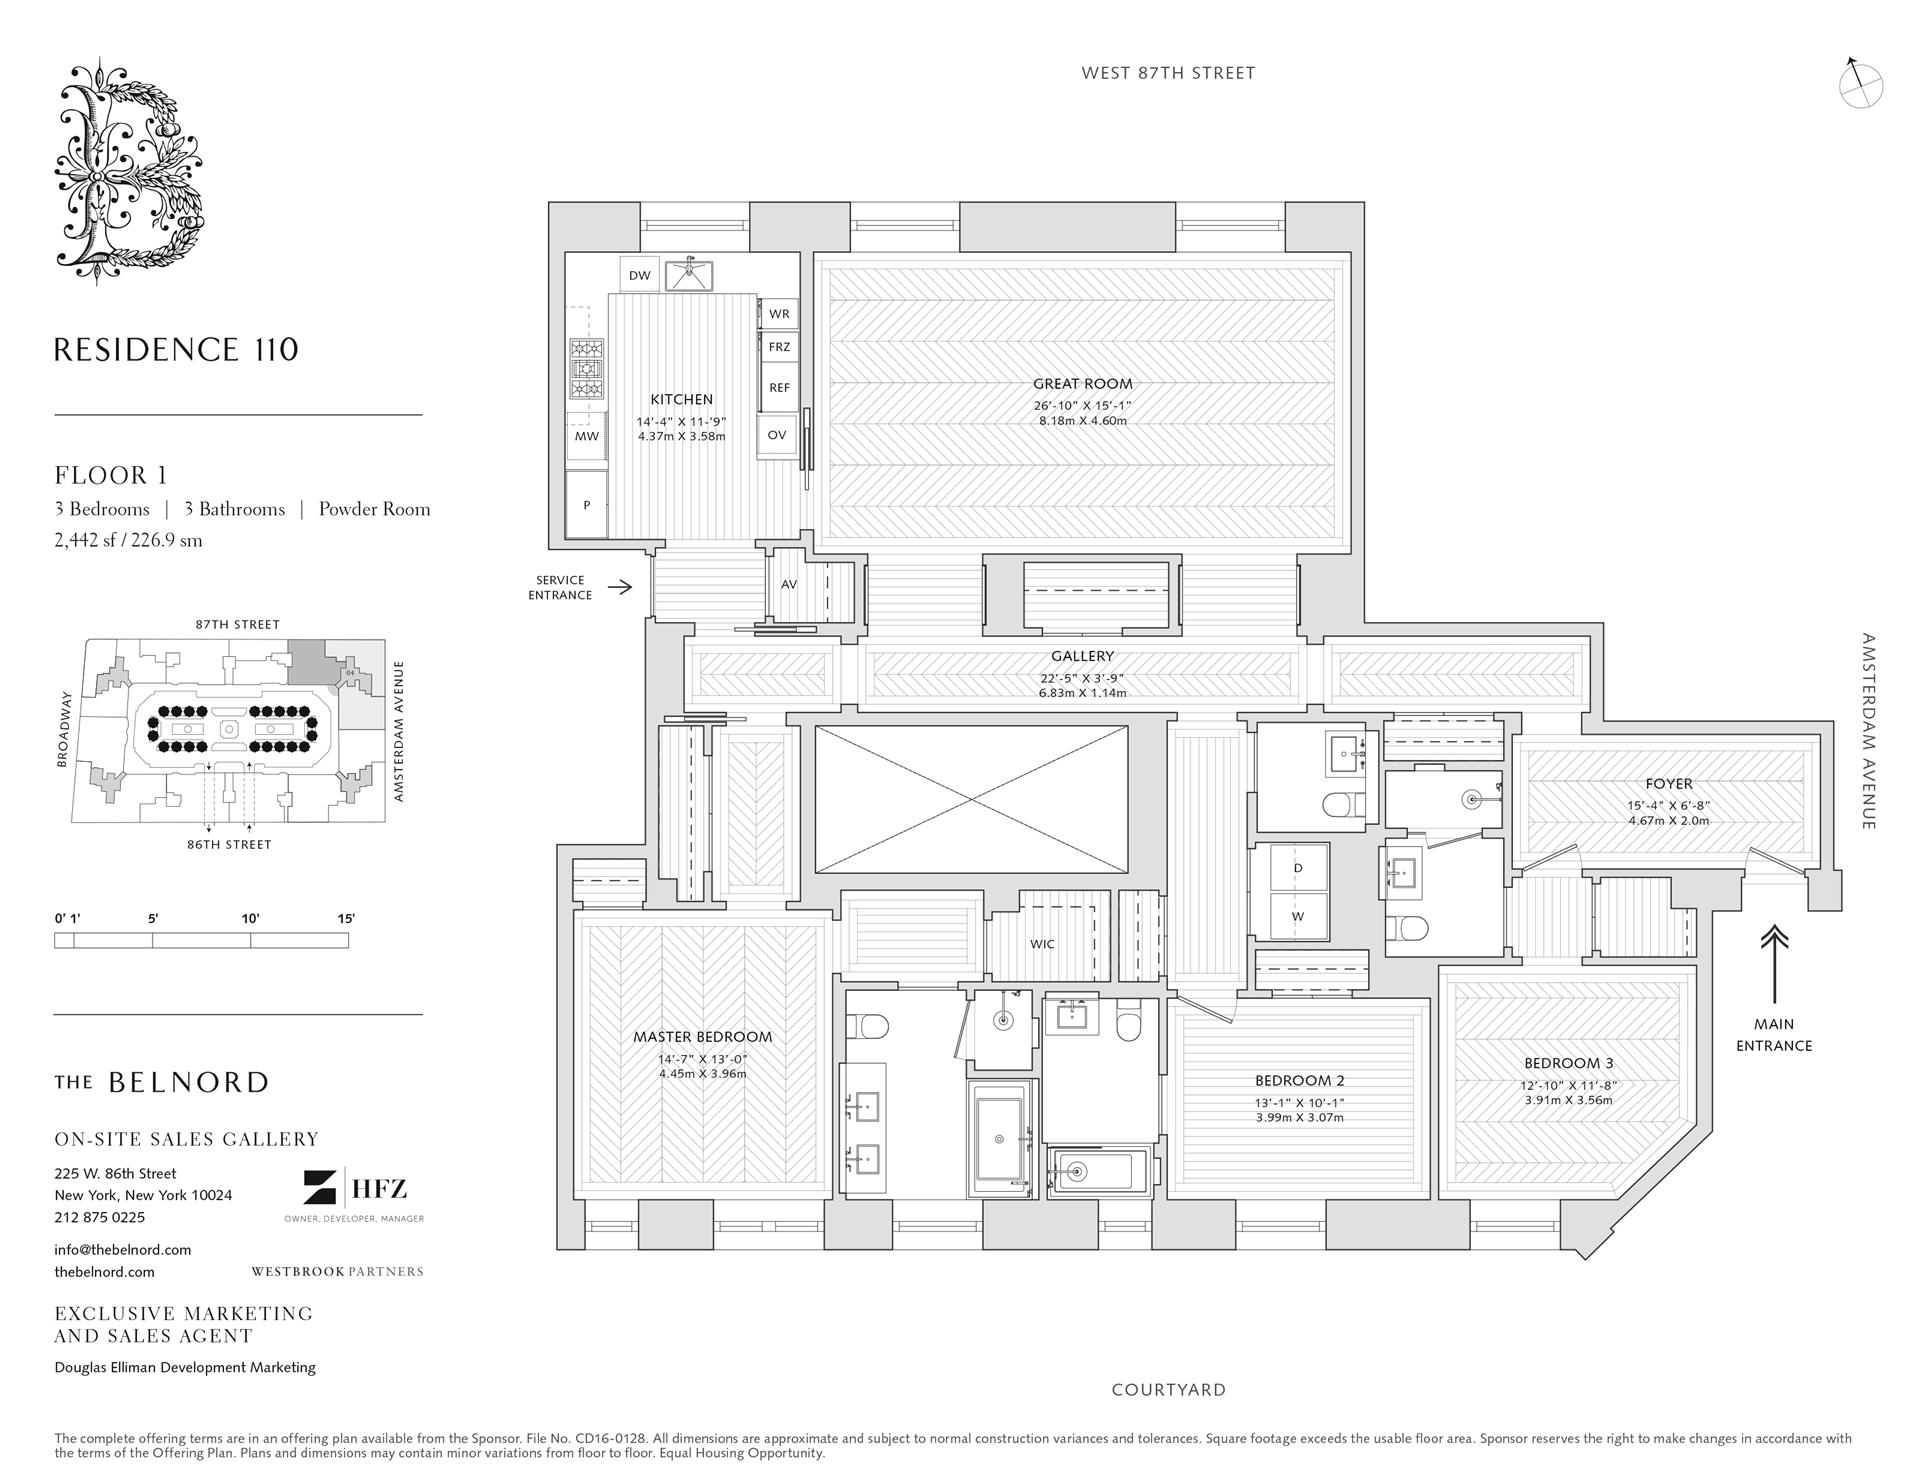 Floor plan of The Belnord, 225 West 86th St, 110 - Upper West Side, New York